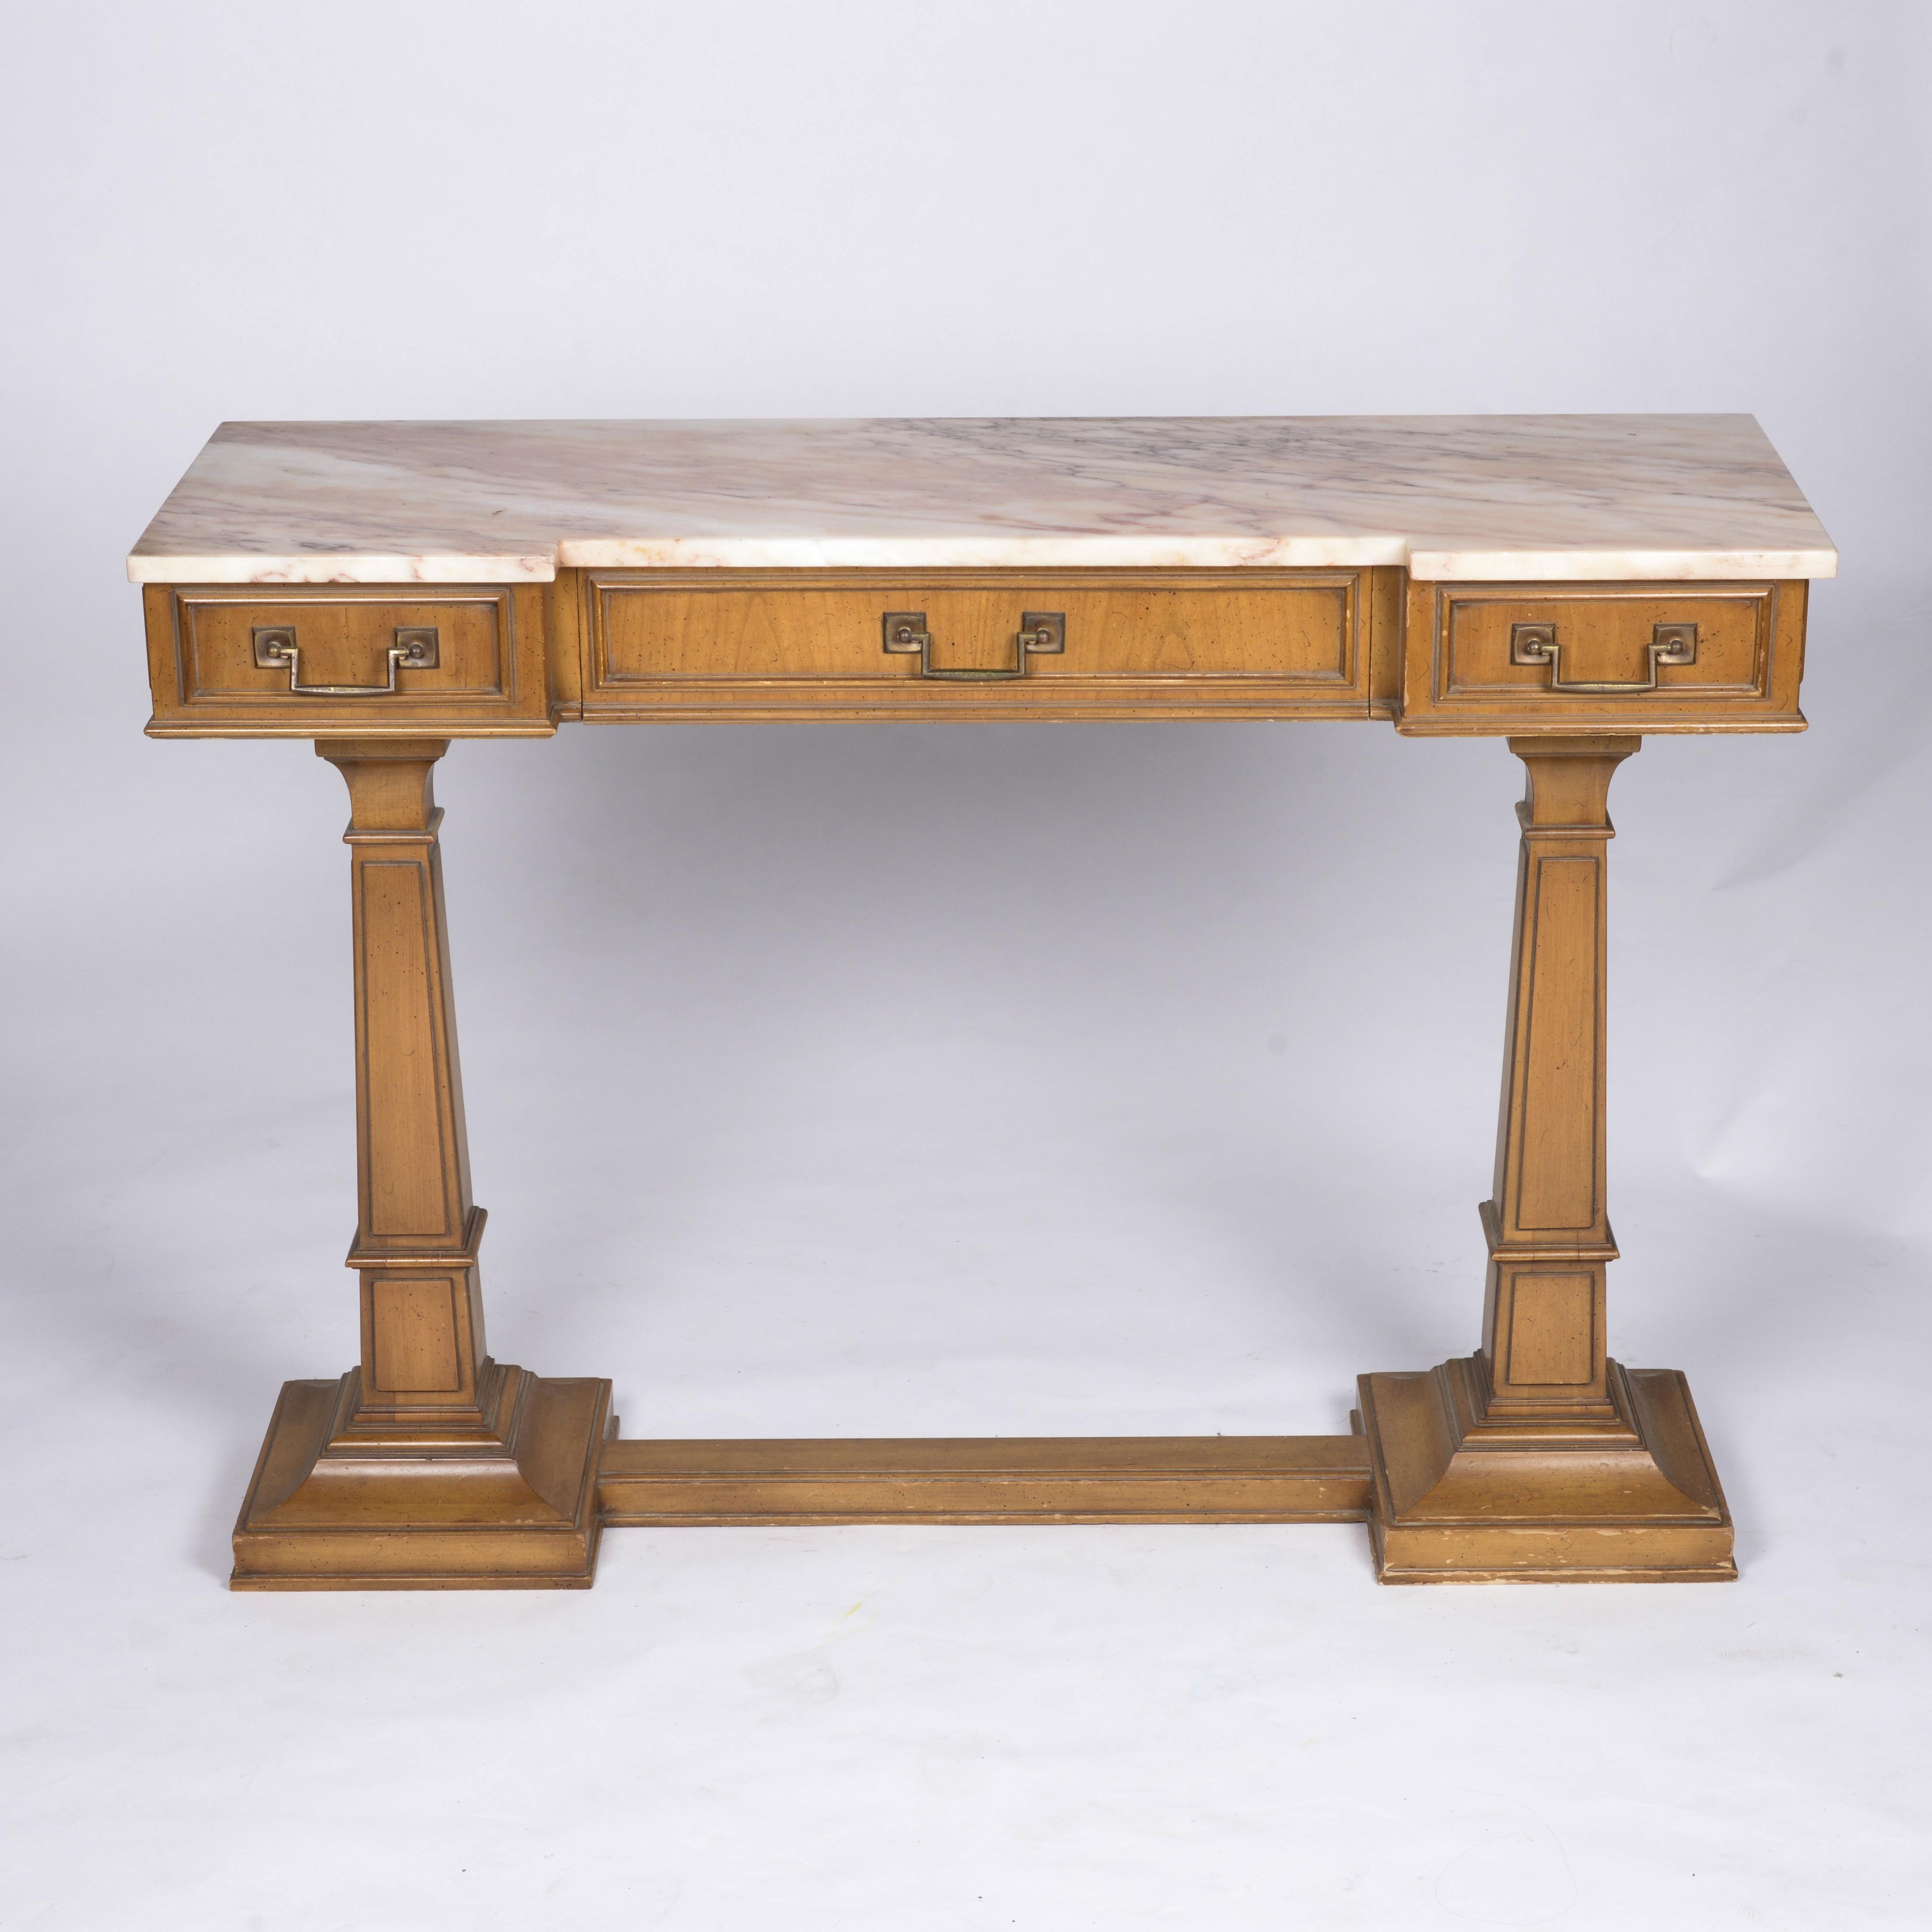 Vintage Marble Top Entry Table by Weiman